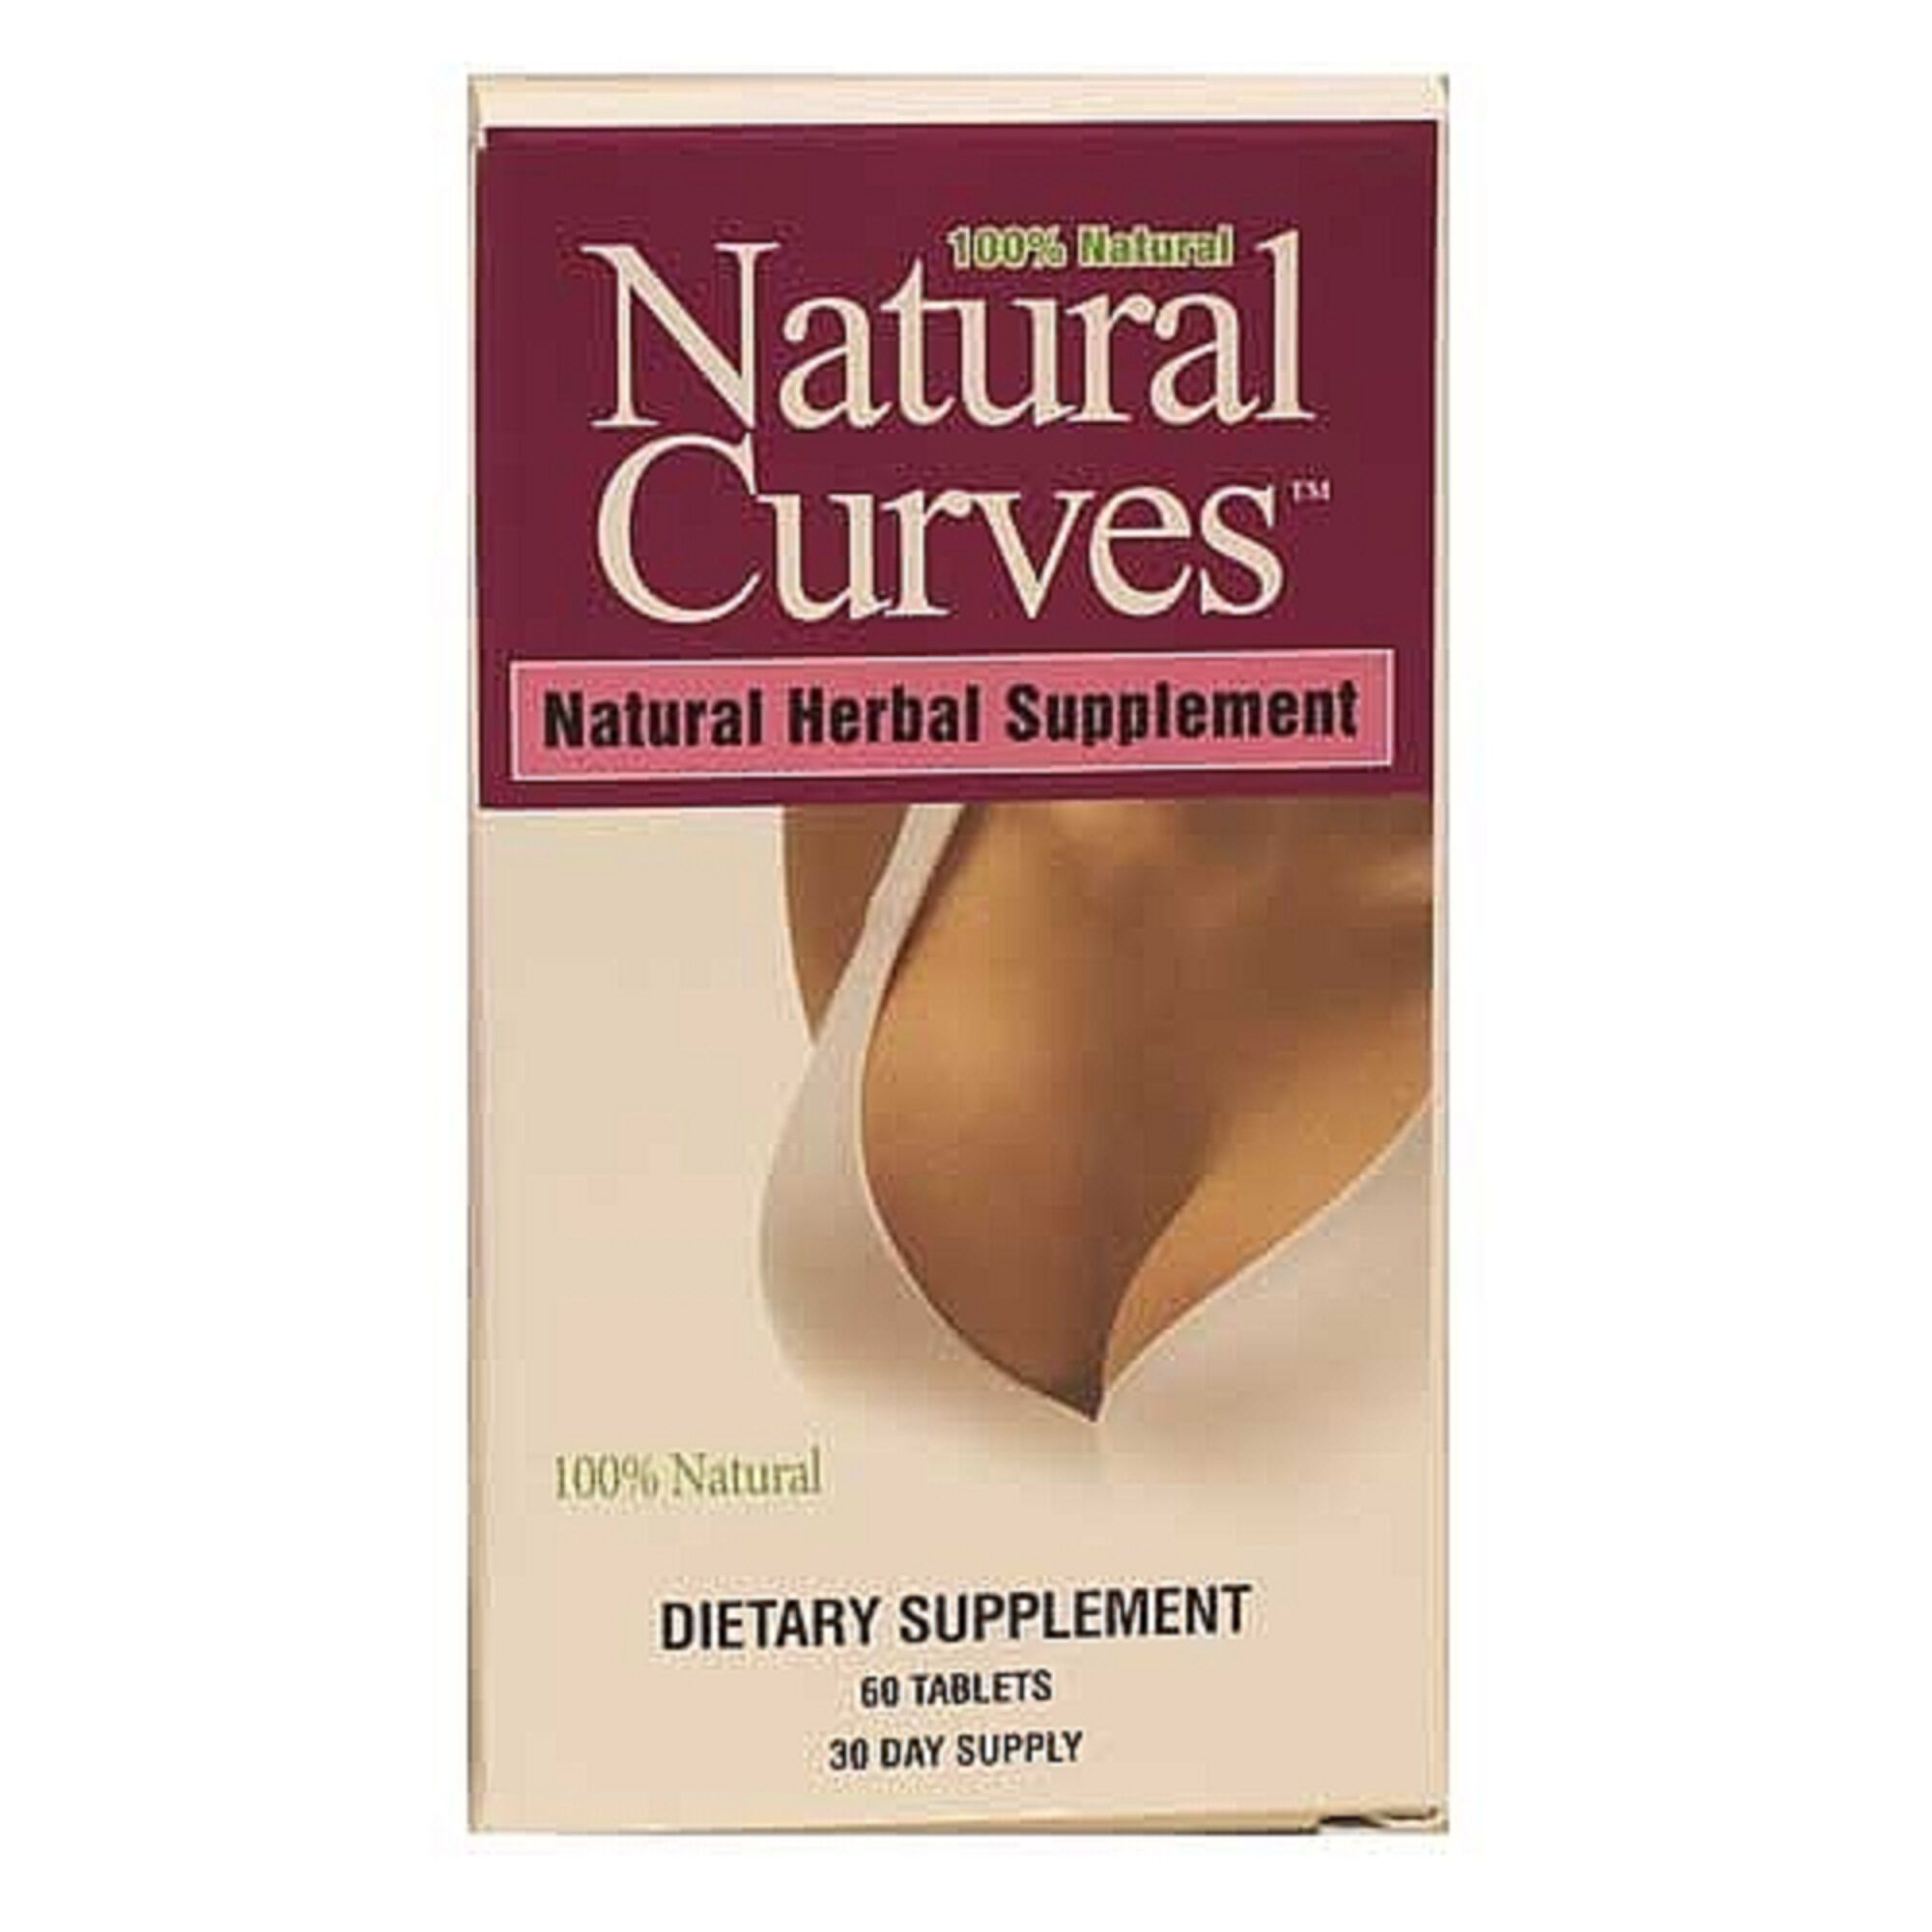 View image. View image. Natural Curves